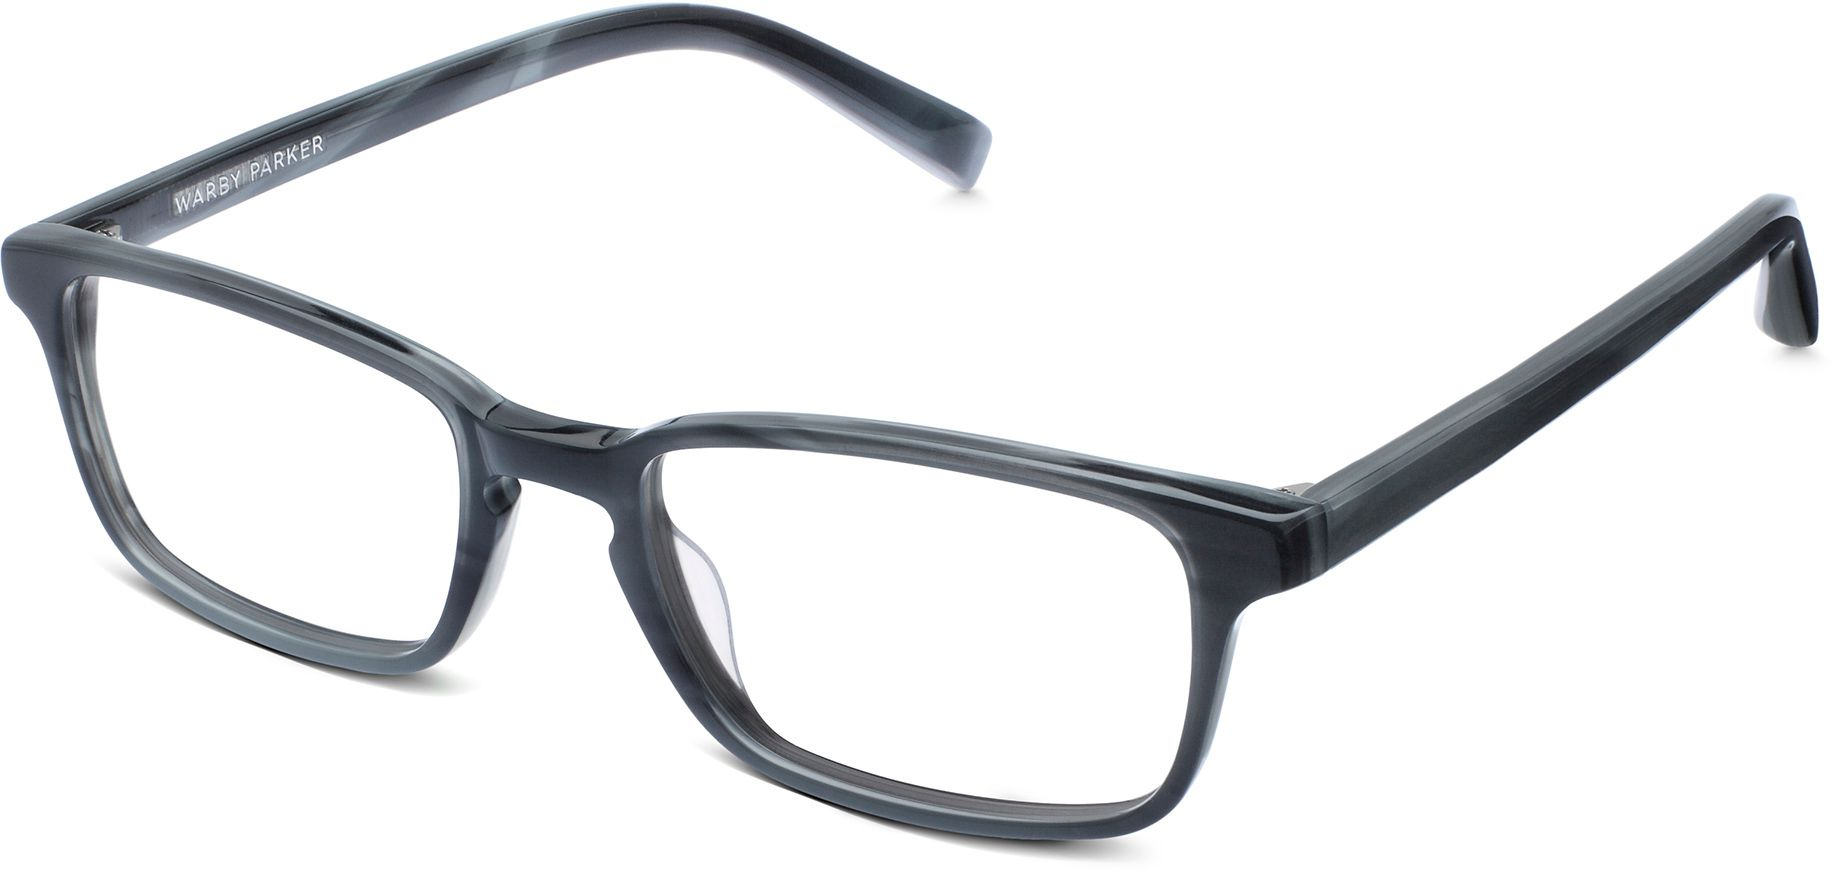 Hardy Eyeglasses in Striped Pacific for Men | Warby Parker